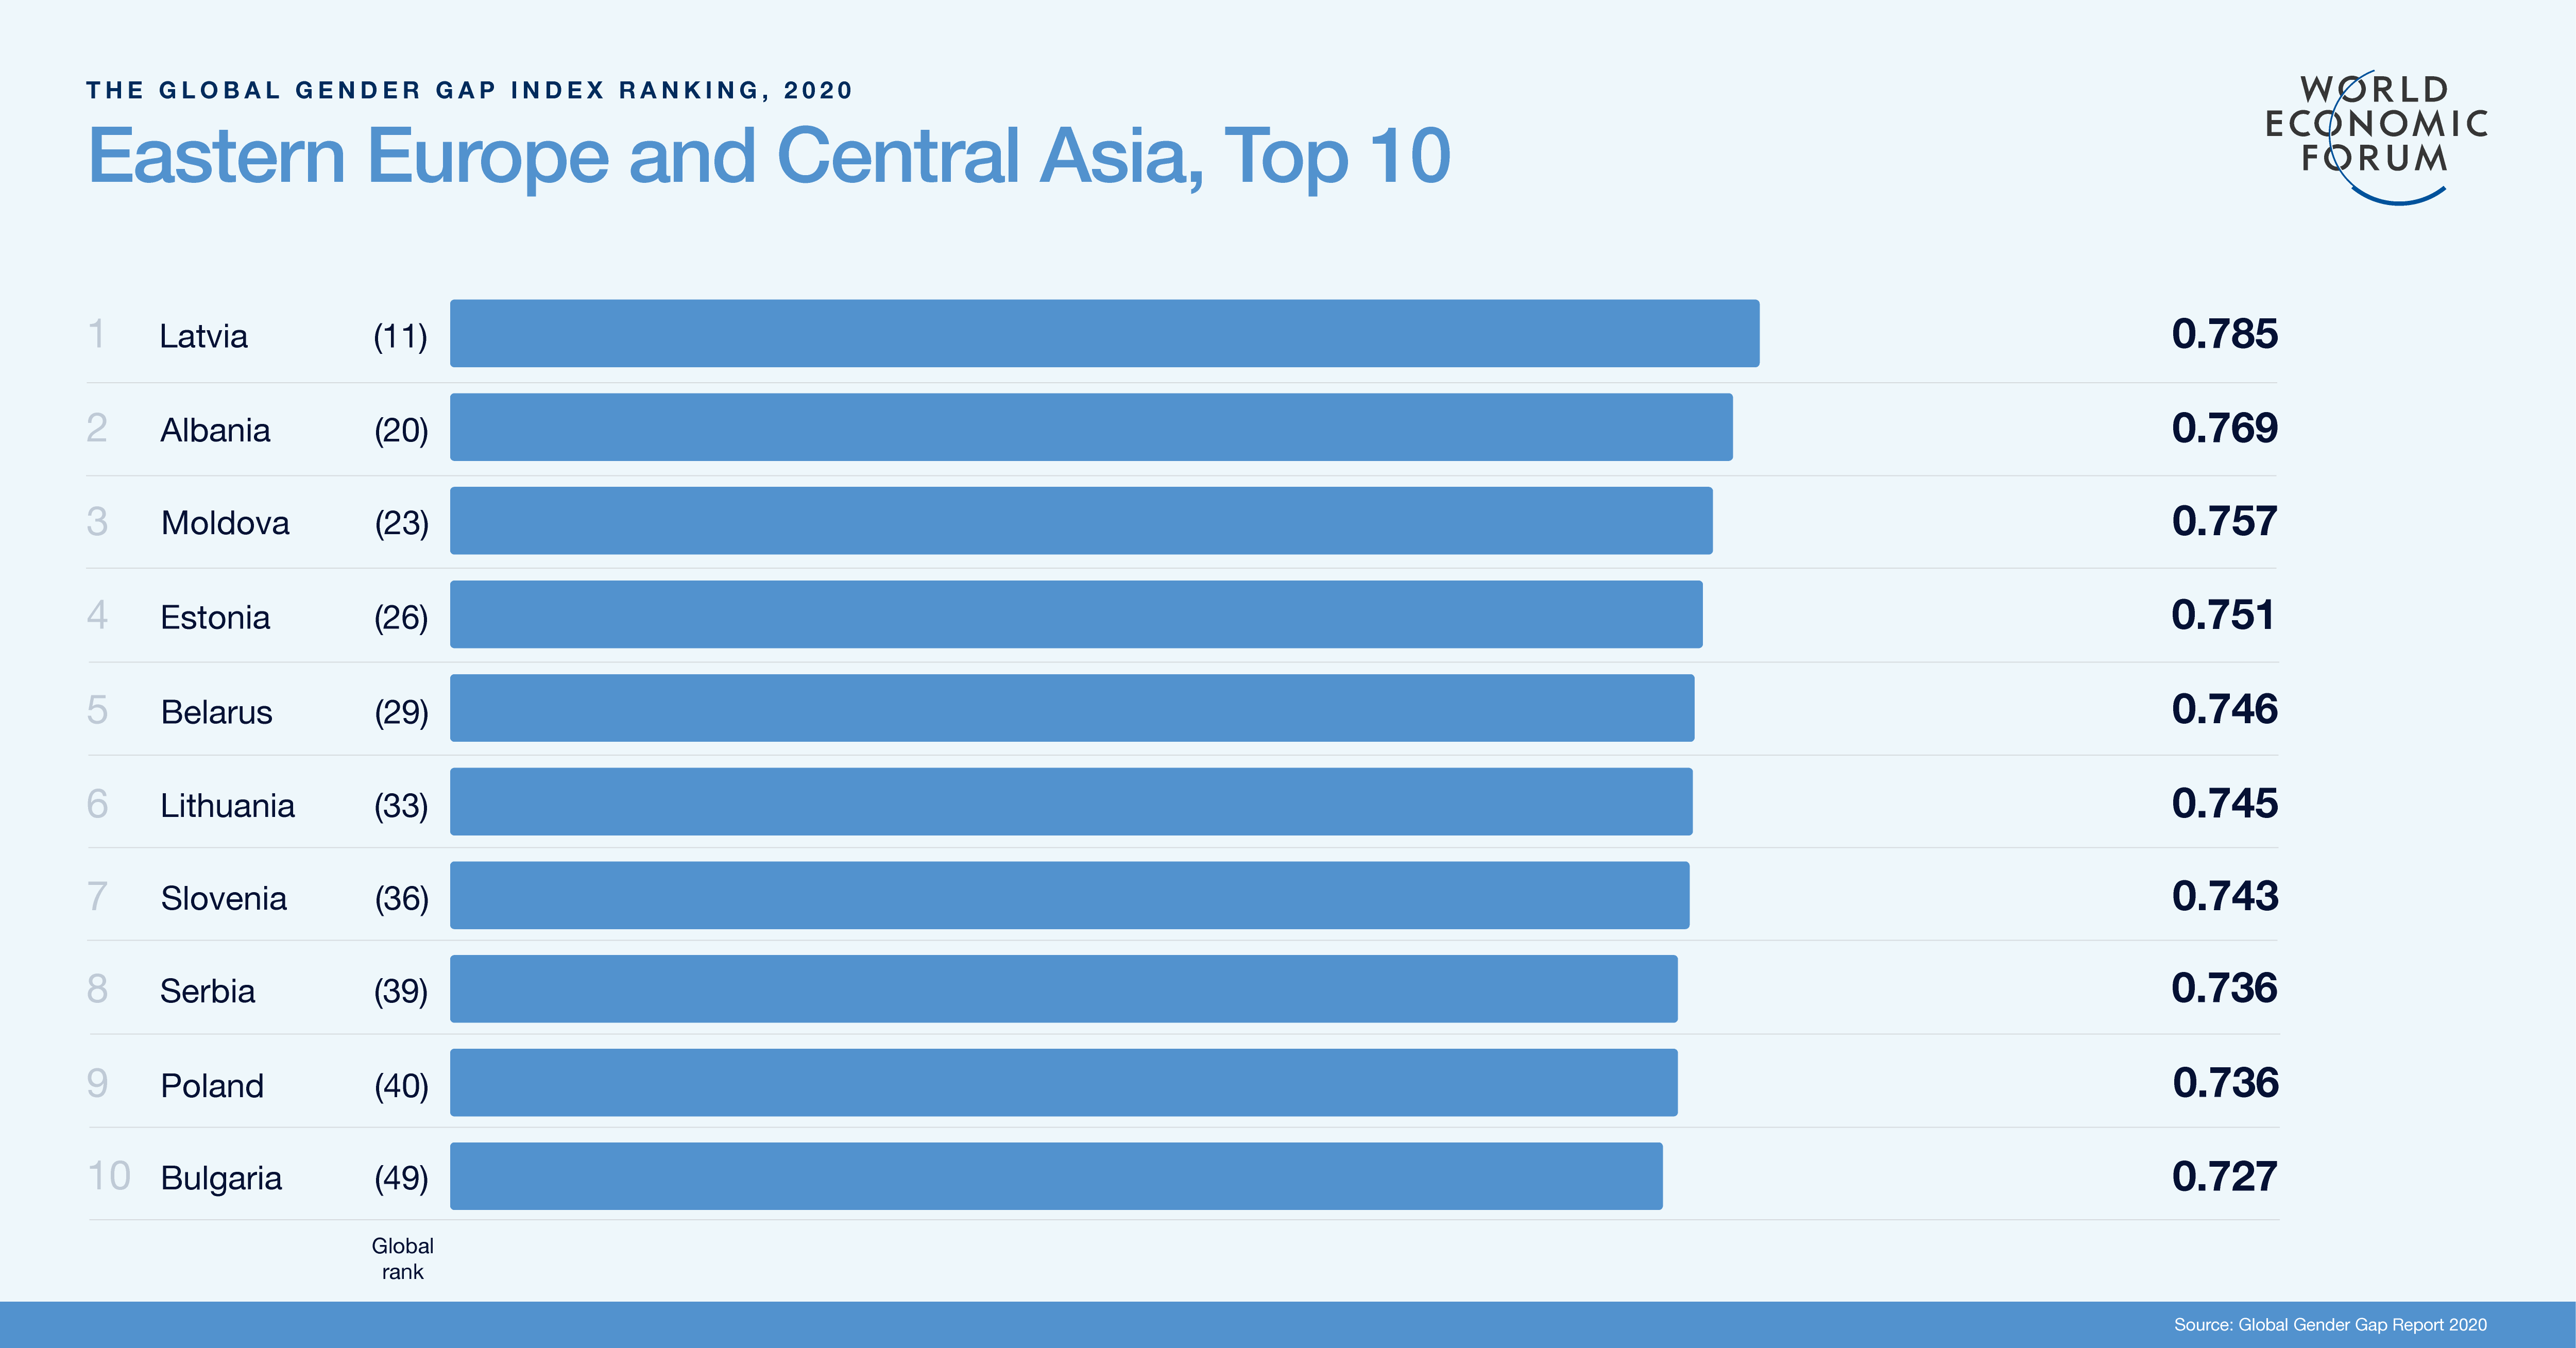 Eastern Europe and Central Asia Top 10 Rankings - Global Gender Gap Report 2020